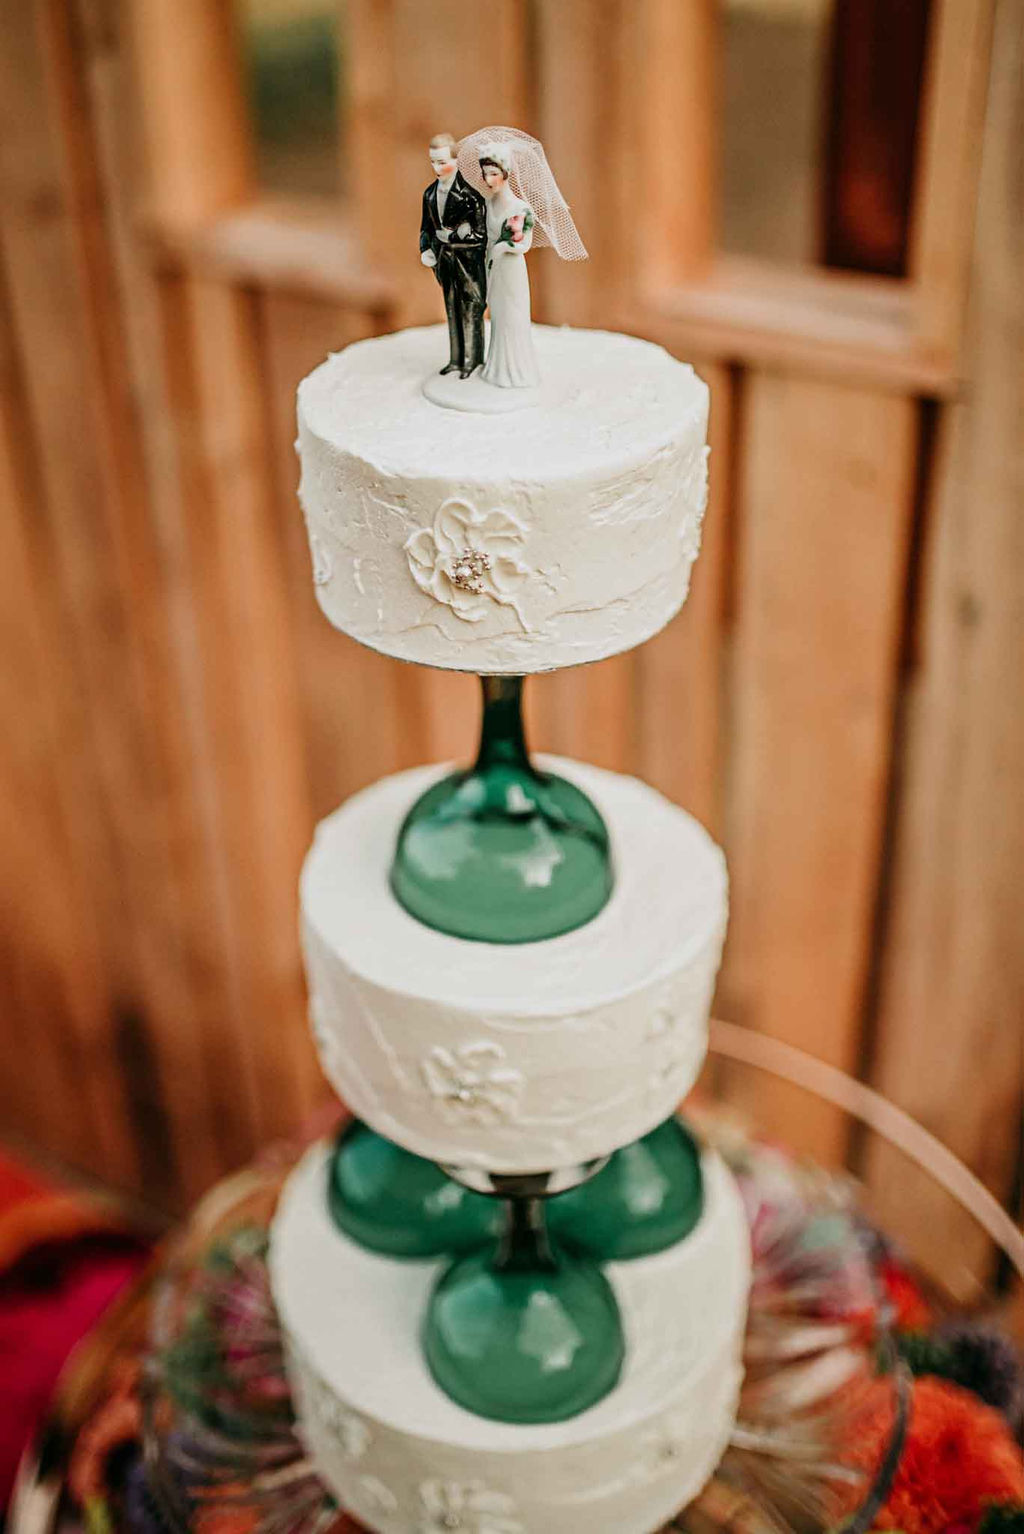 Vintage Wedding Cake by Cobble Hill Cake Co. on Vancouver Island